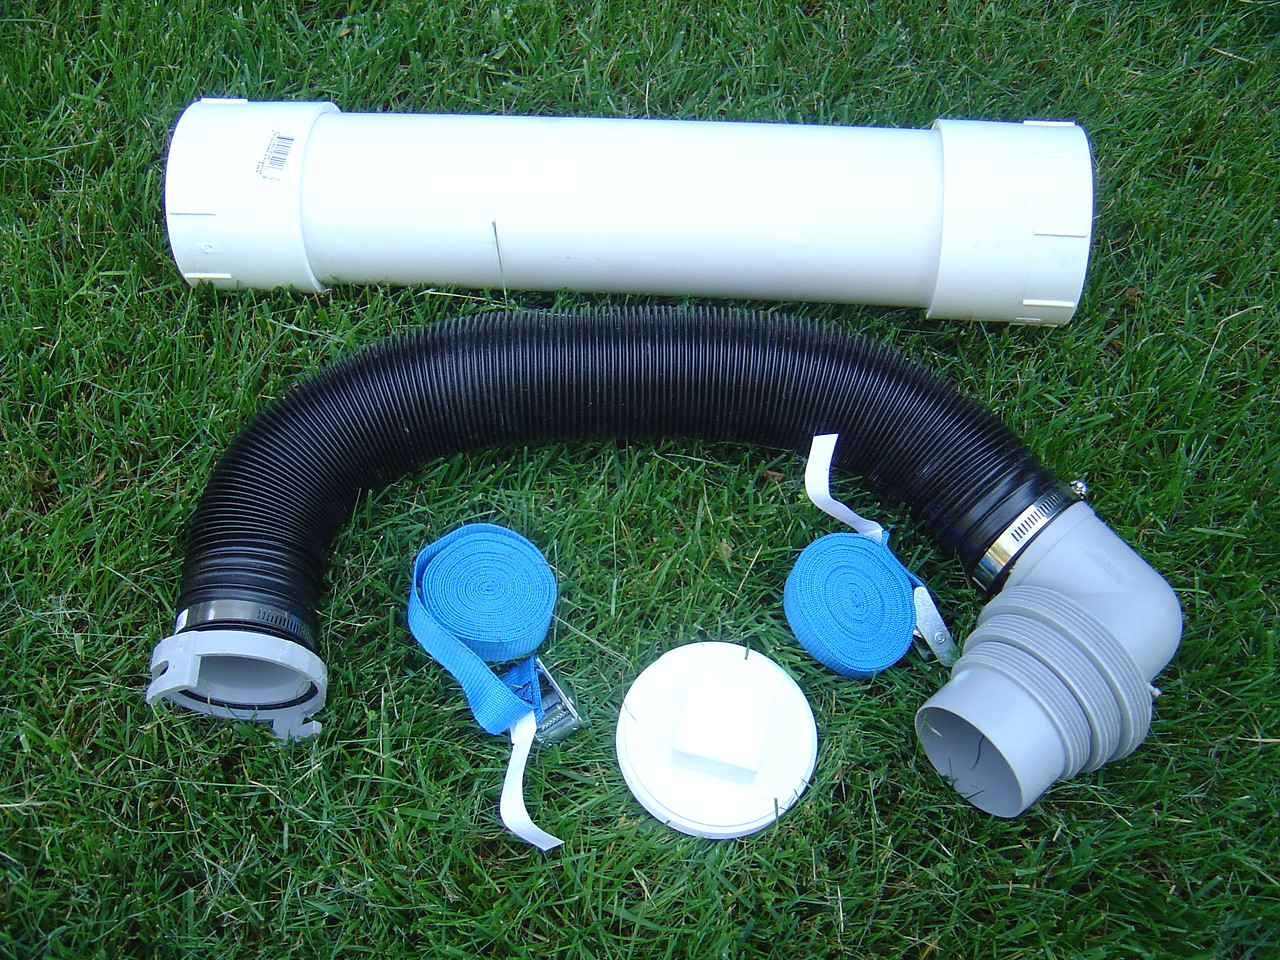 The parts - PVC pipe,  two slip/thread adapters, one end cap, straps (I ended up using a ratched type strap), and sewer hose with sewer drain adapter.